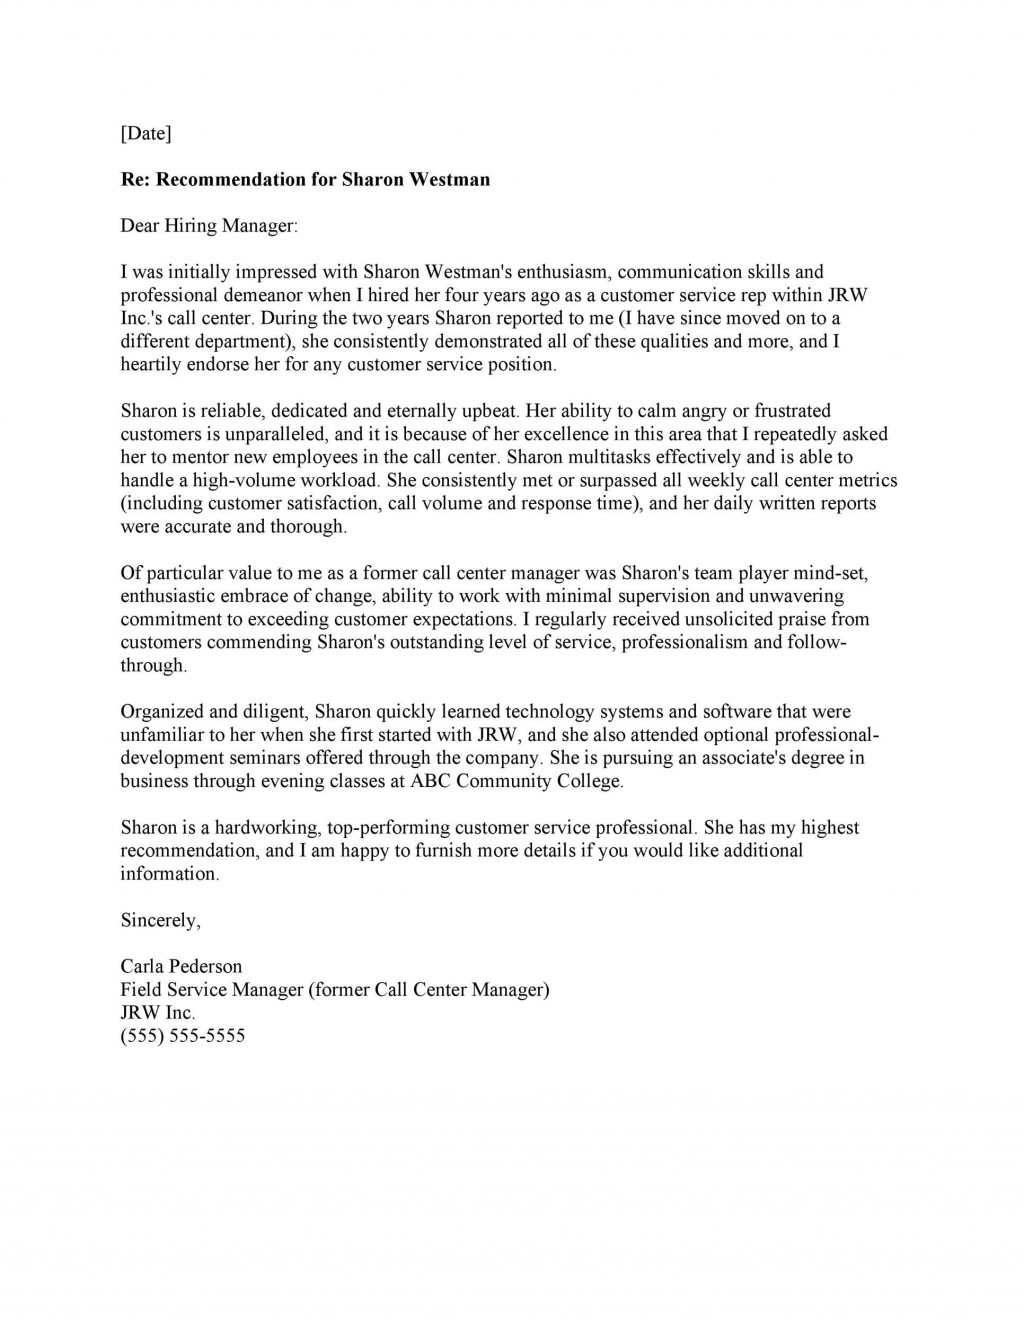 008 Awful Letter Of Recommendation Template High Resolution  Word Sample For College Admission Student DocLarge